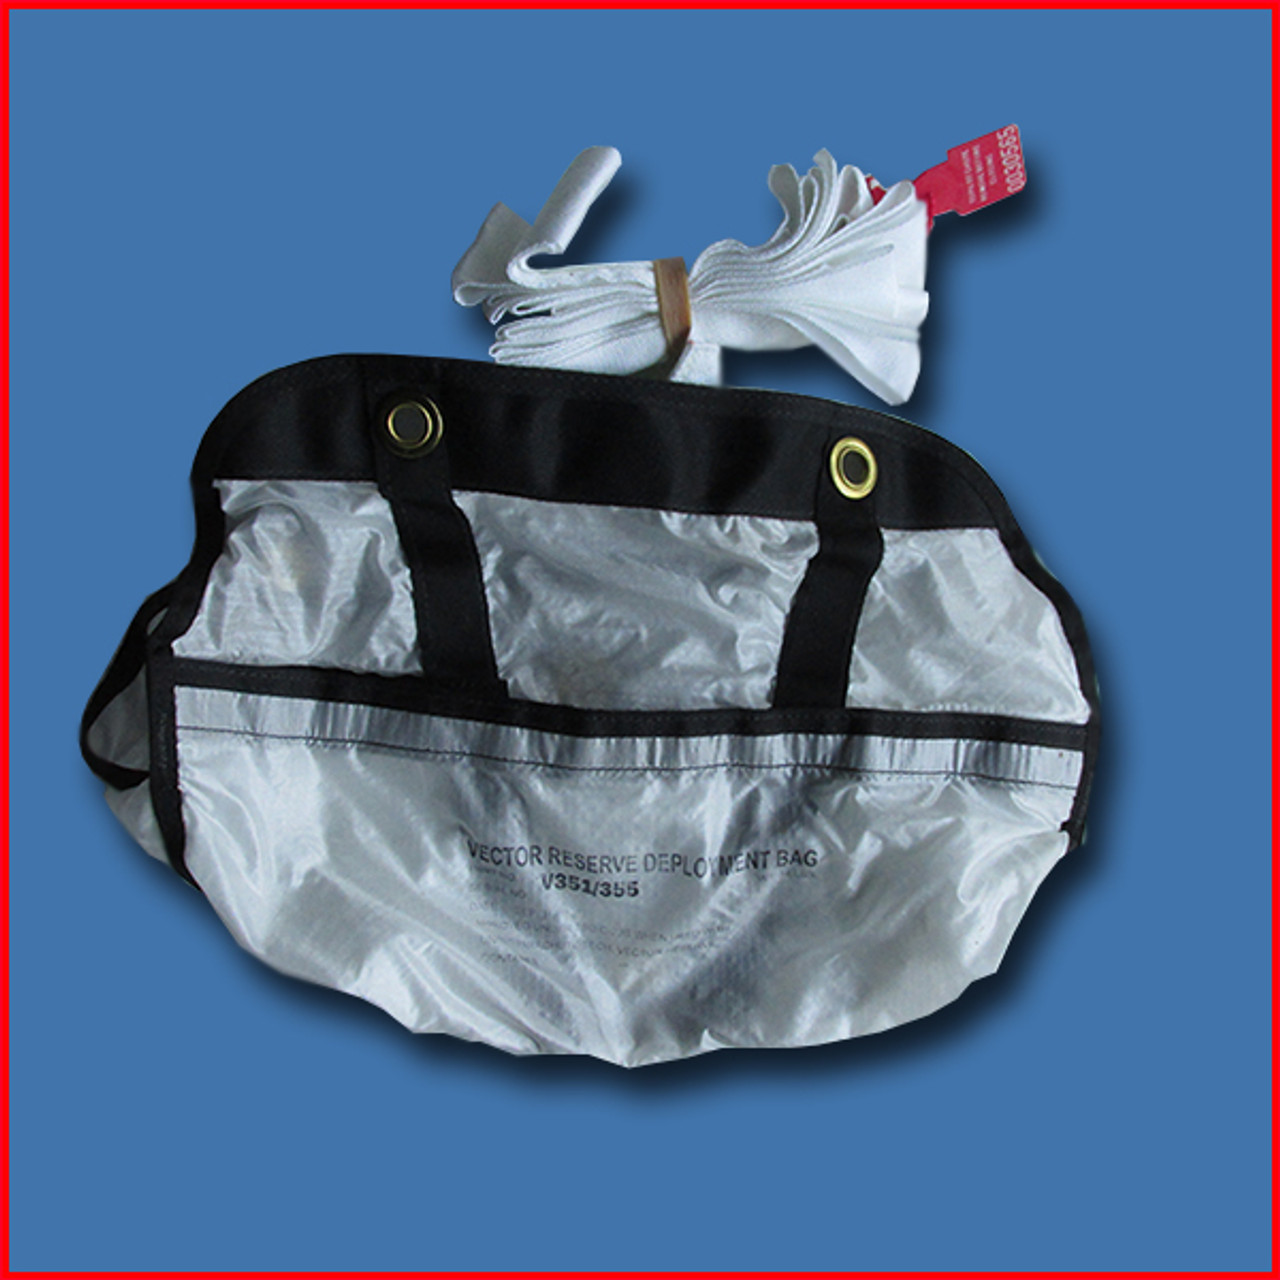 UPT V351-355 Freebag with Skyhook (New)